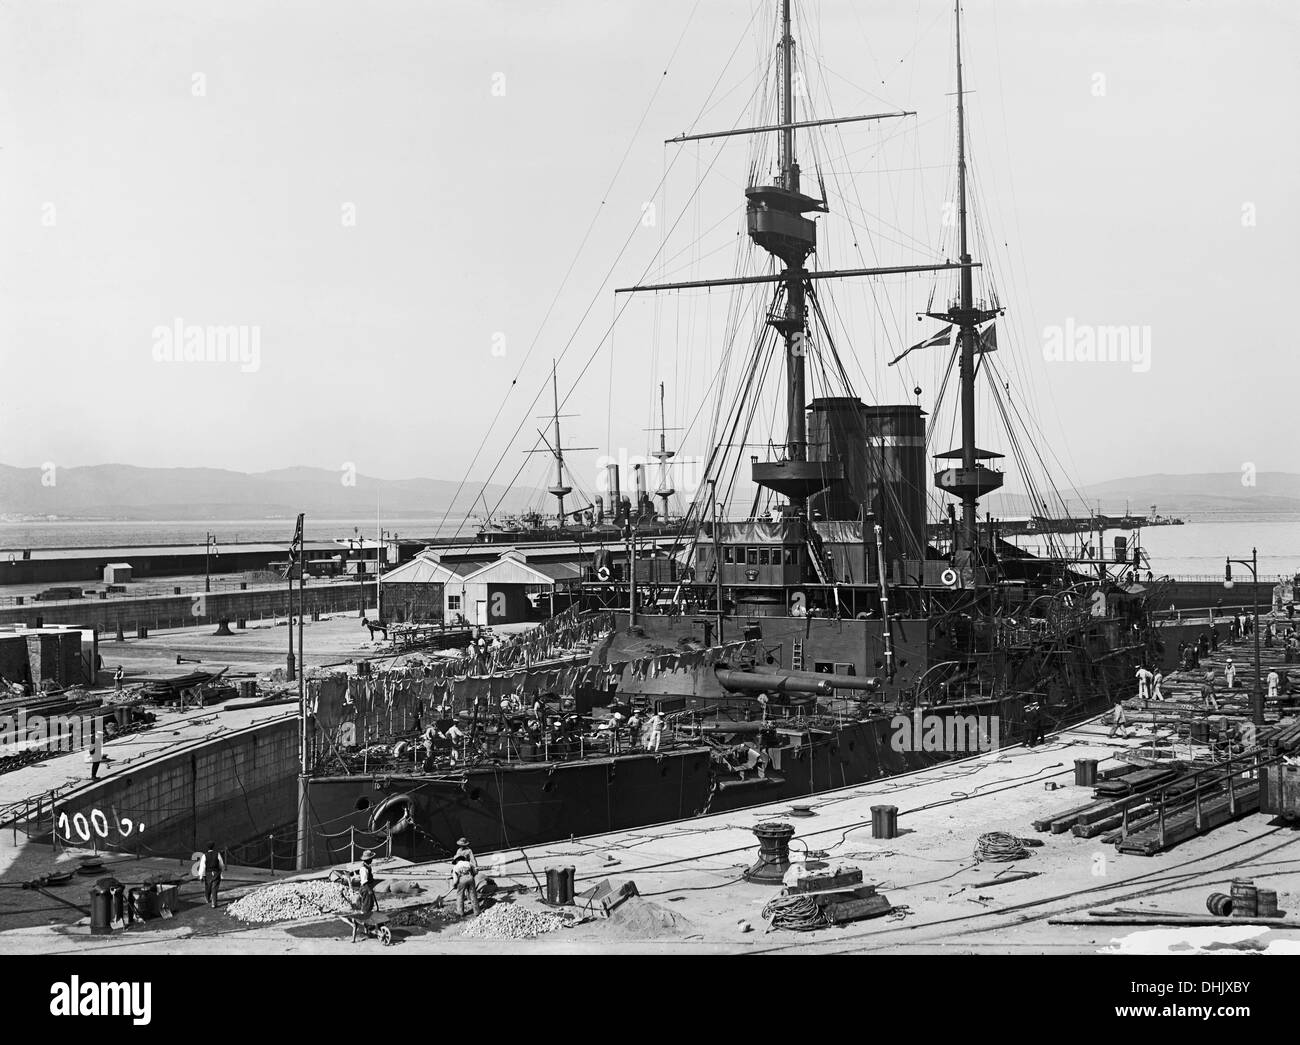 View of a warship in the port of Gibraltar between 1911 and 1913. The image was taken by the German photographer Oswald Lübeck, one of the earliest representatives of travel photography and ship photography aboard passenger ships. Photo: Deutsche Fotothek/Oswald Lübeck - Stock Image